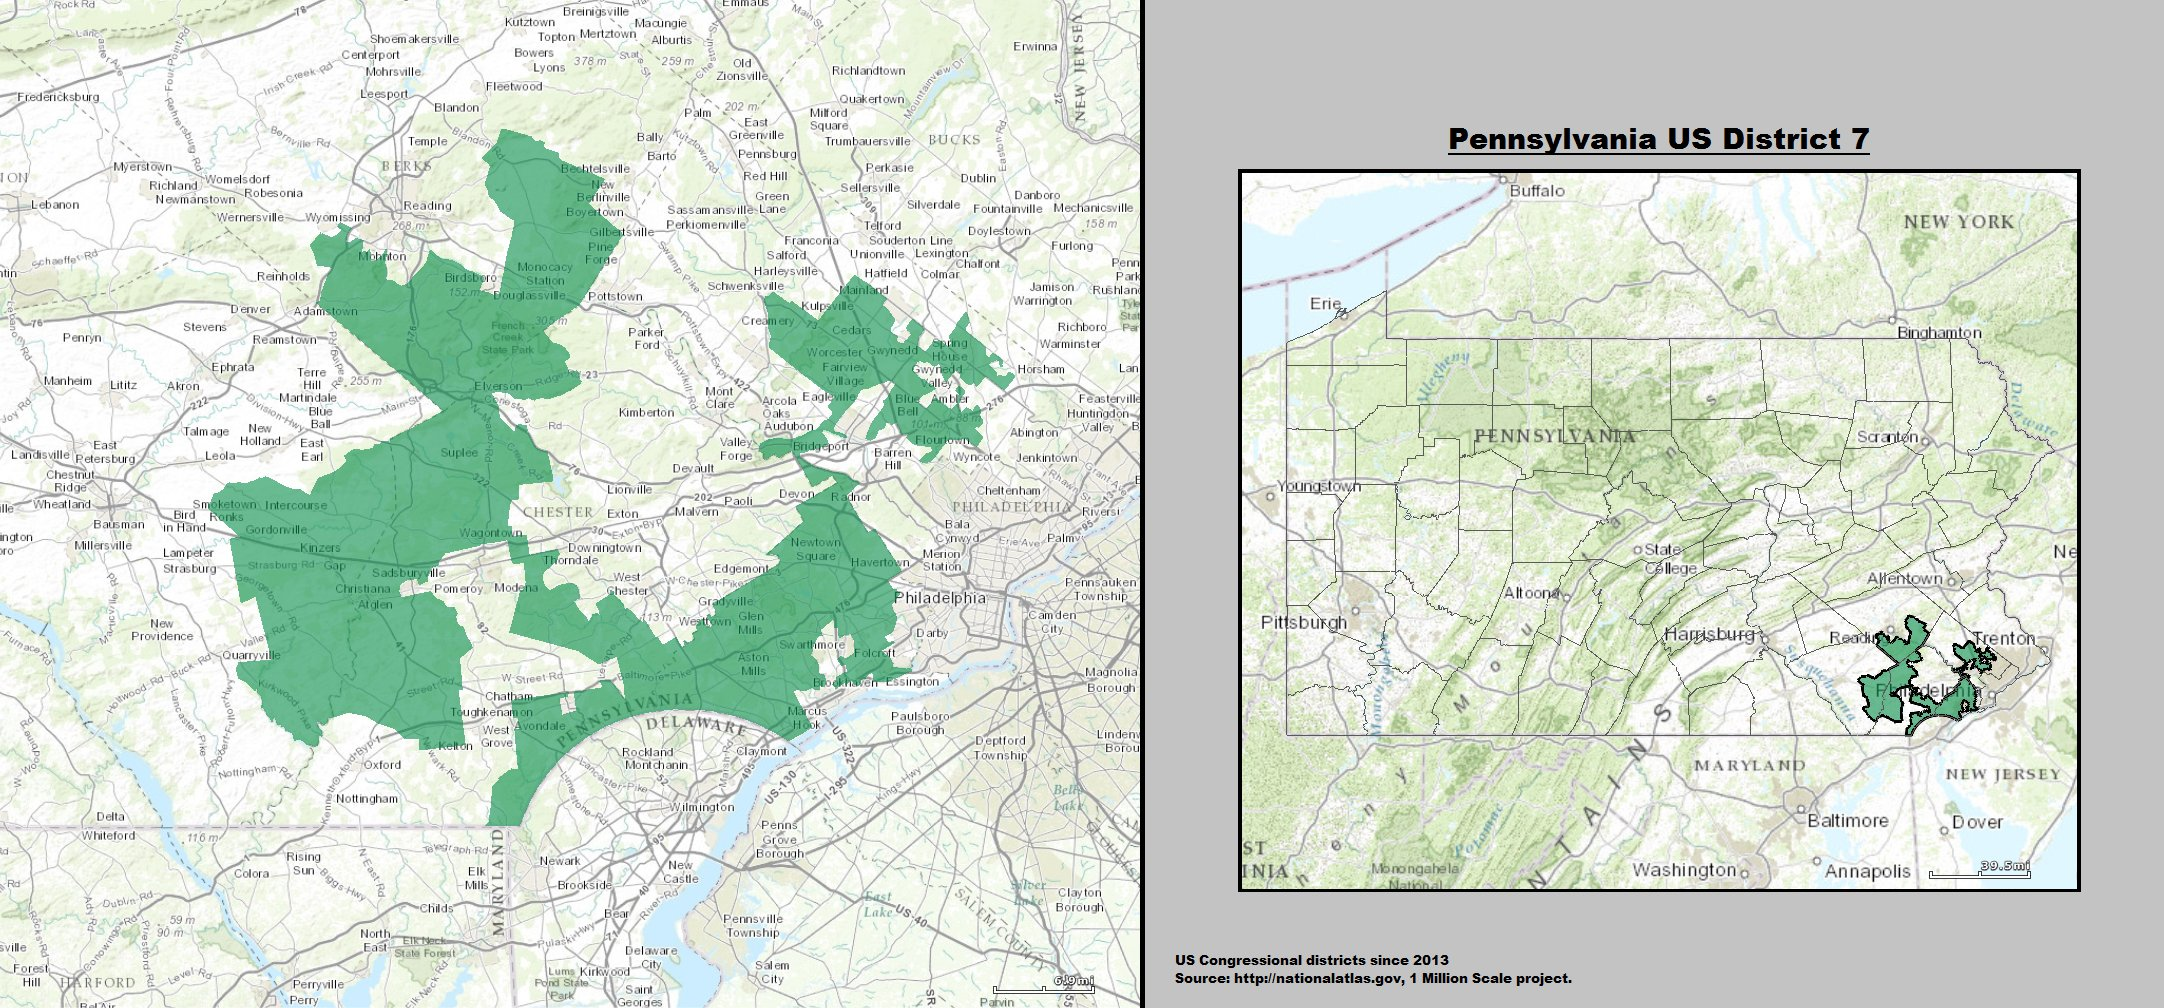 Pennsylvania US Congressional District 7